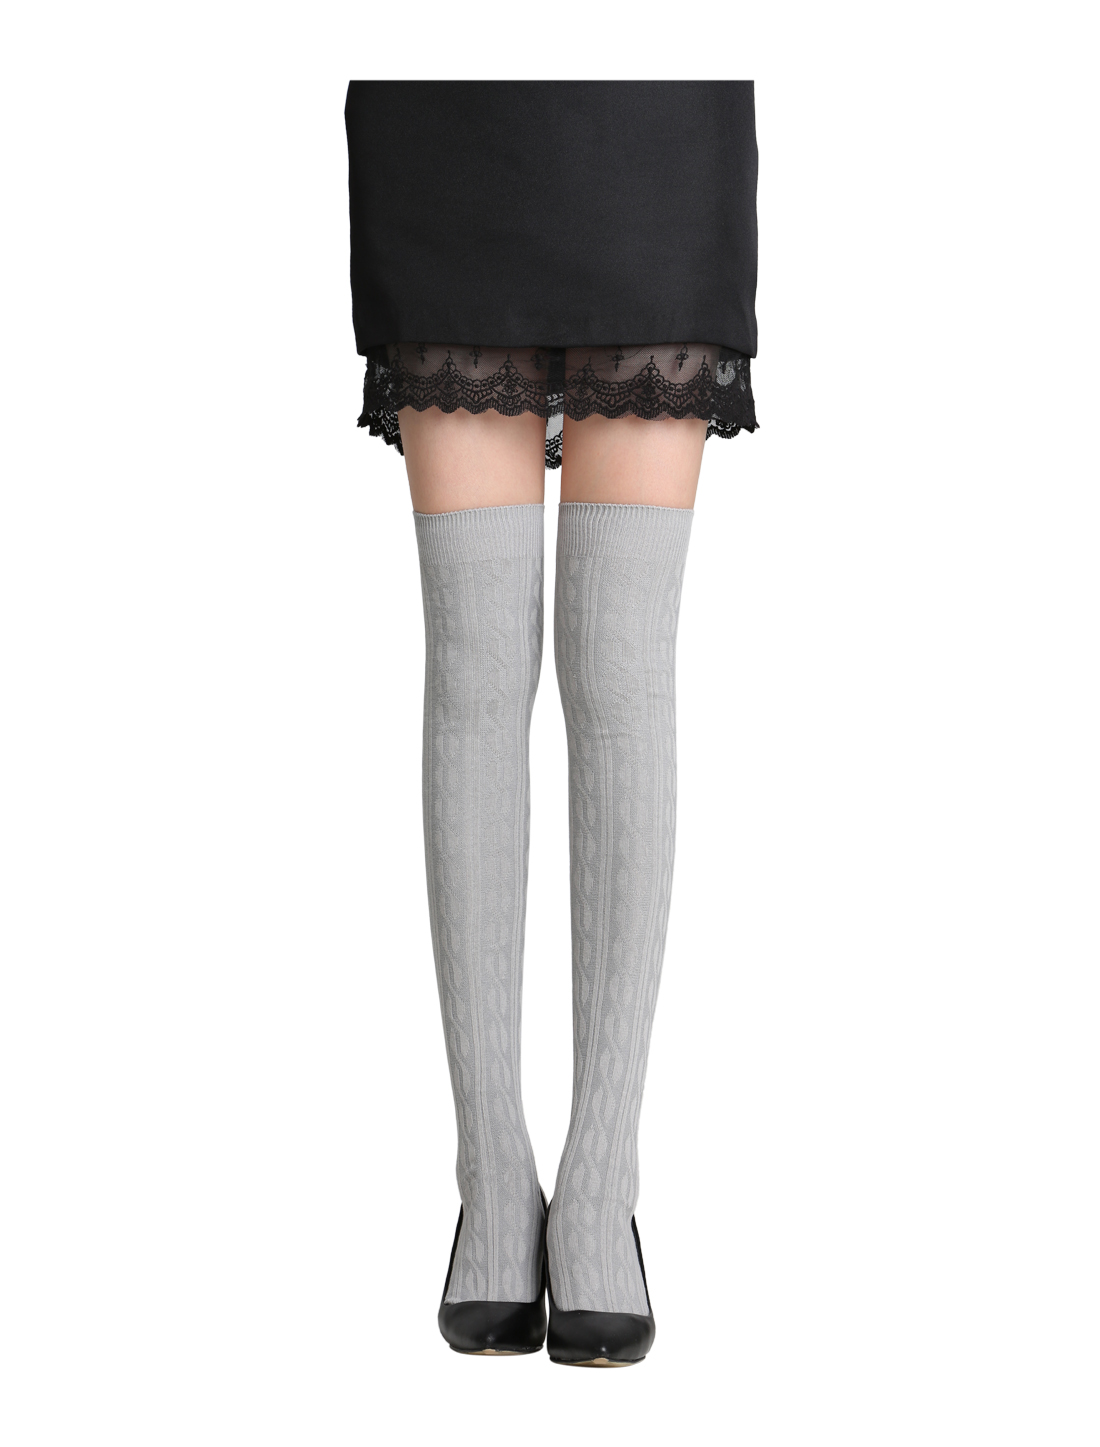 Ladies Over Knee Stretchy Ribs Knitted Stockings Light Gray 9-11